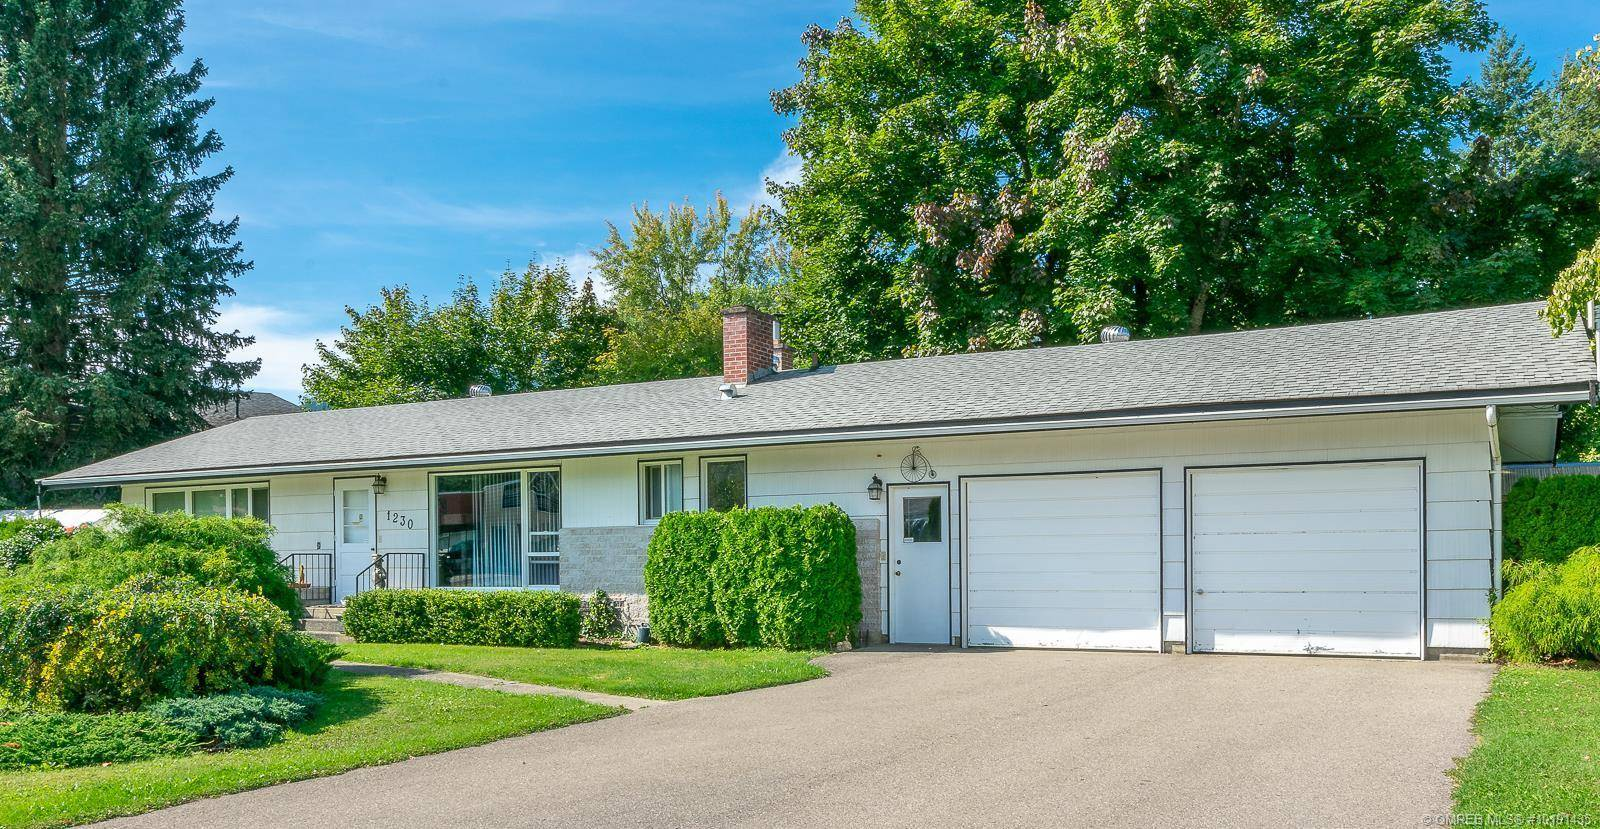 Home for sale at 1230 Shuswap Ave Sicamous British Columbia - MLS: 10191435